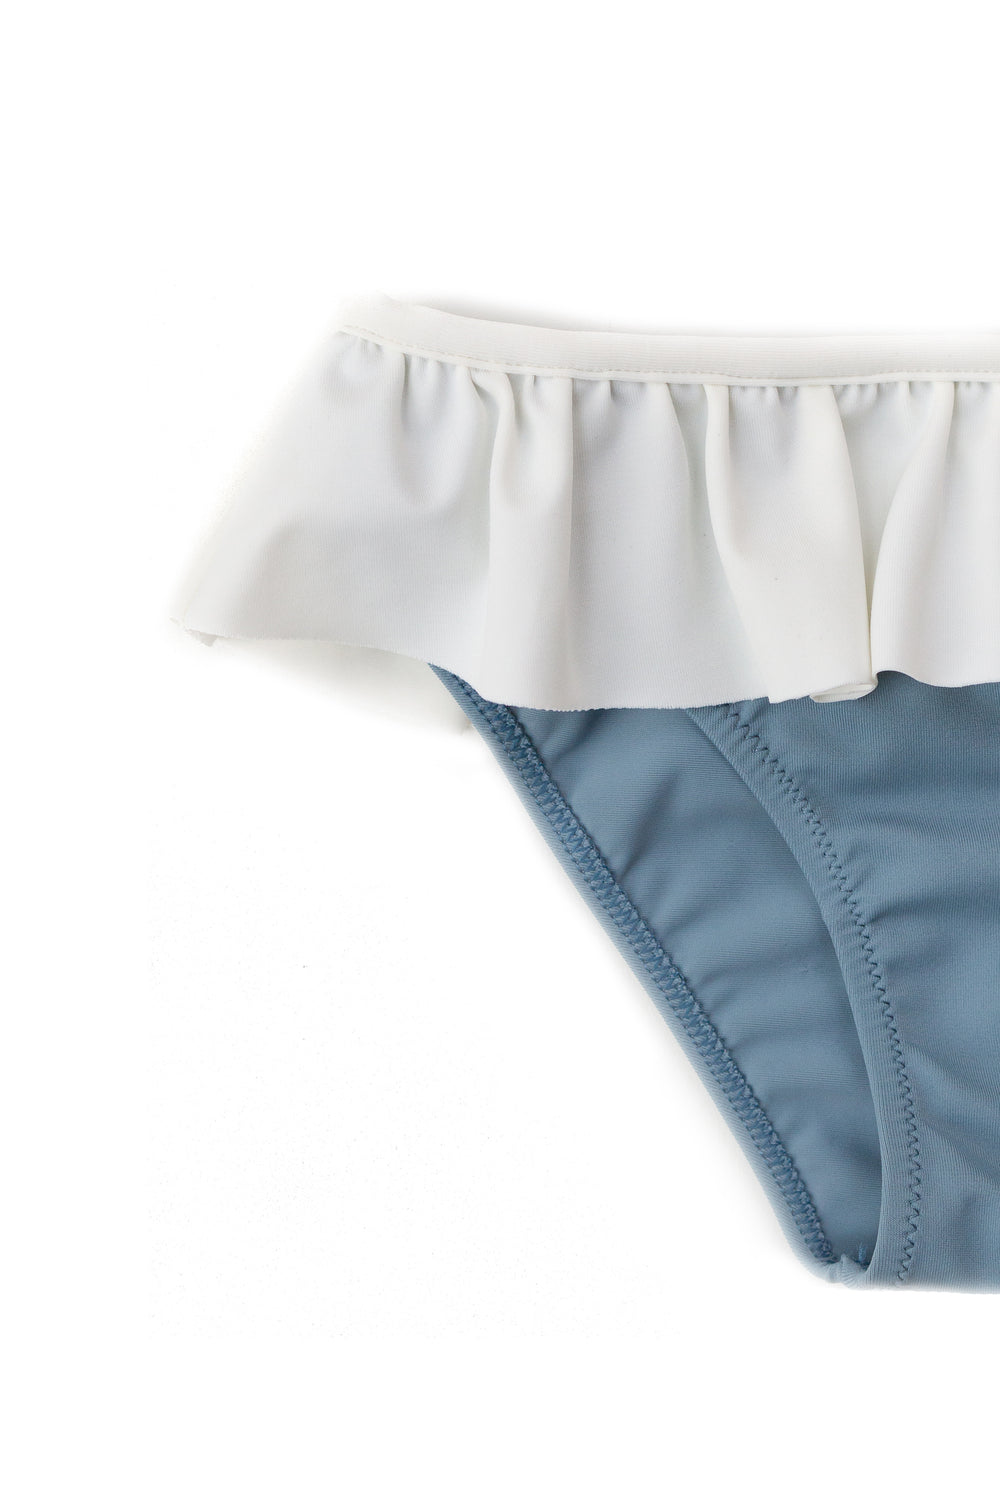 FOLPETTO Maia Bikini in Dusty Blue